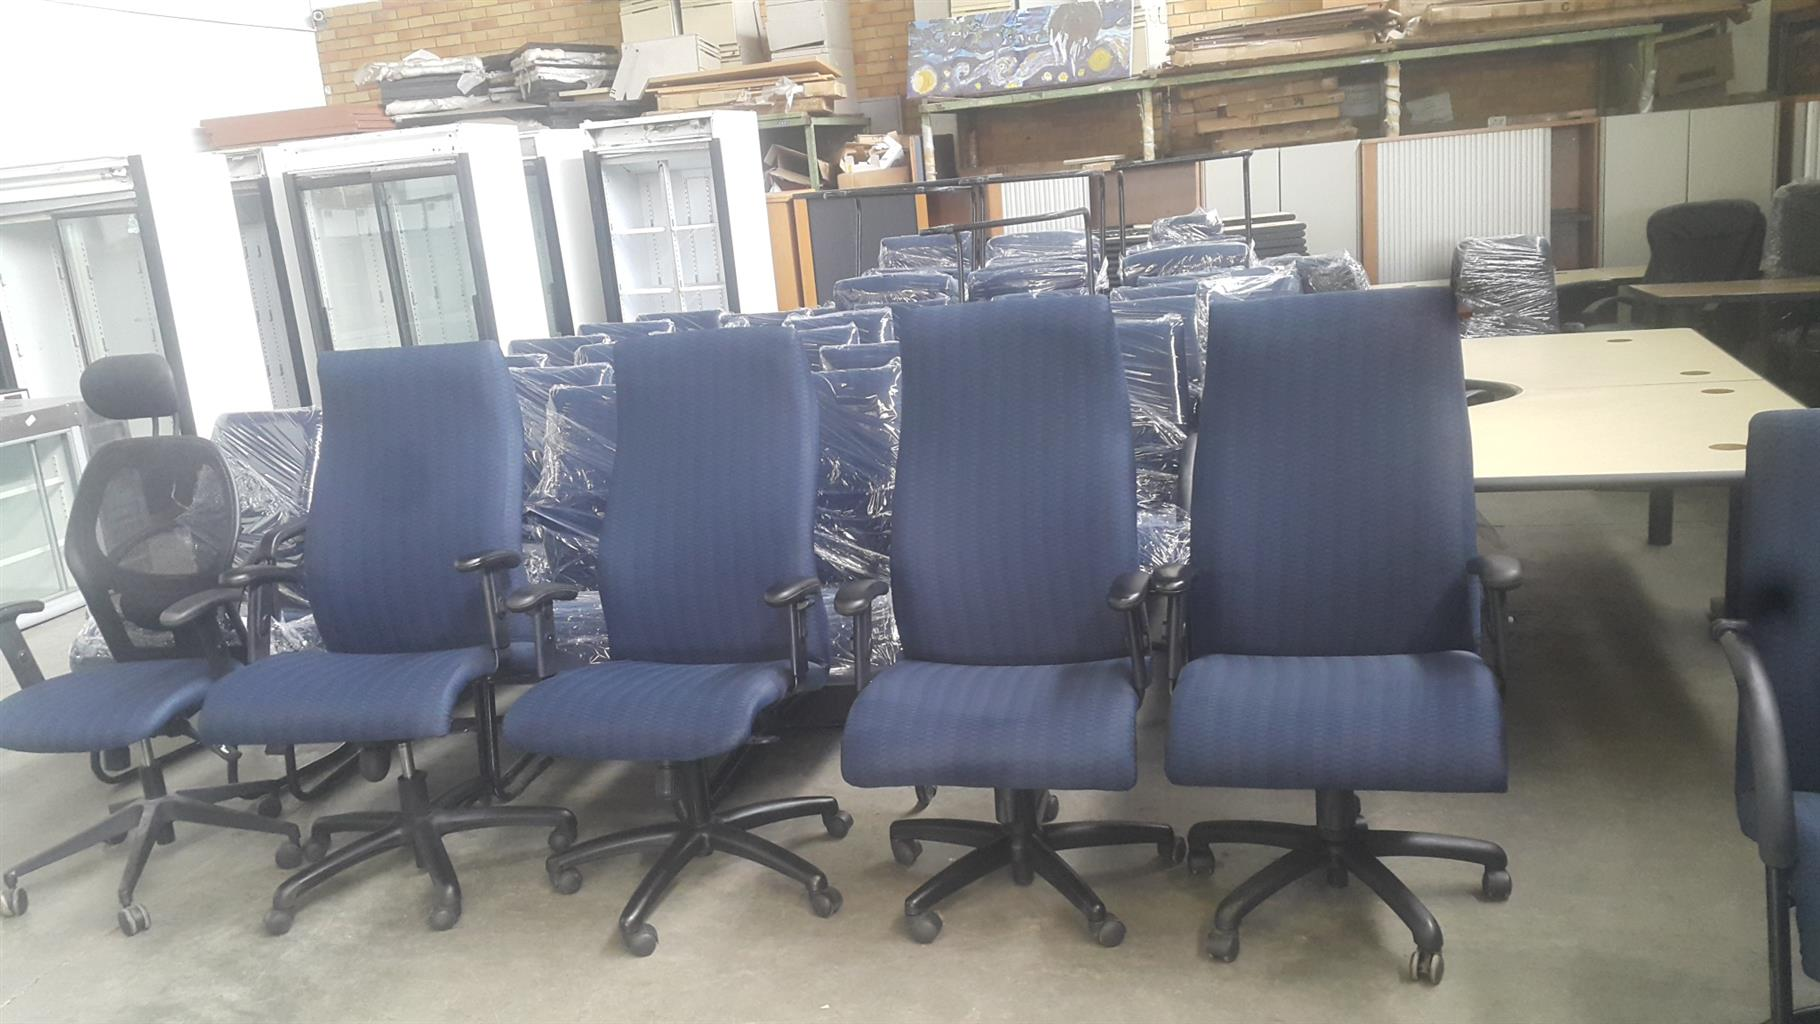 High Back Office Chairs in good shape